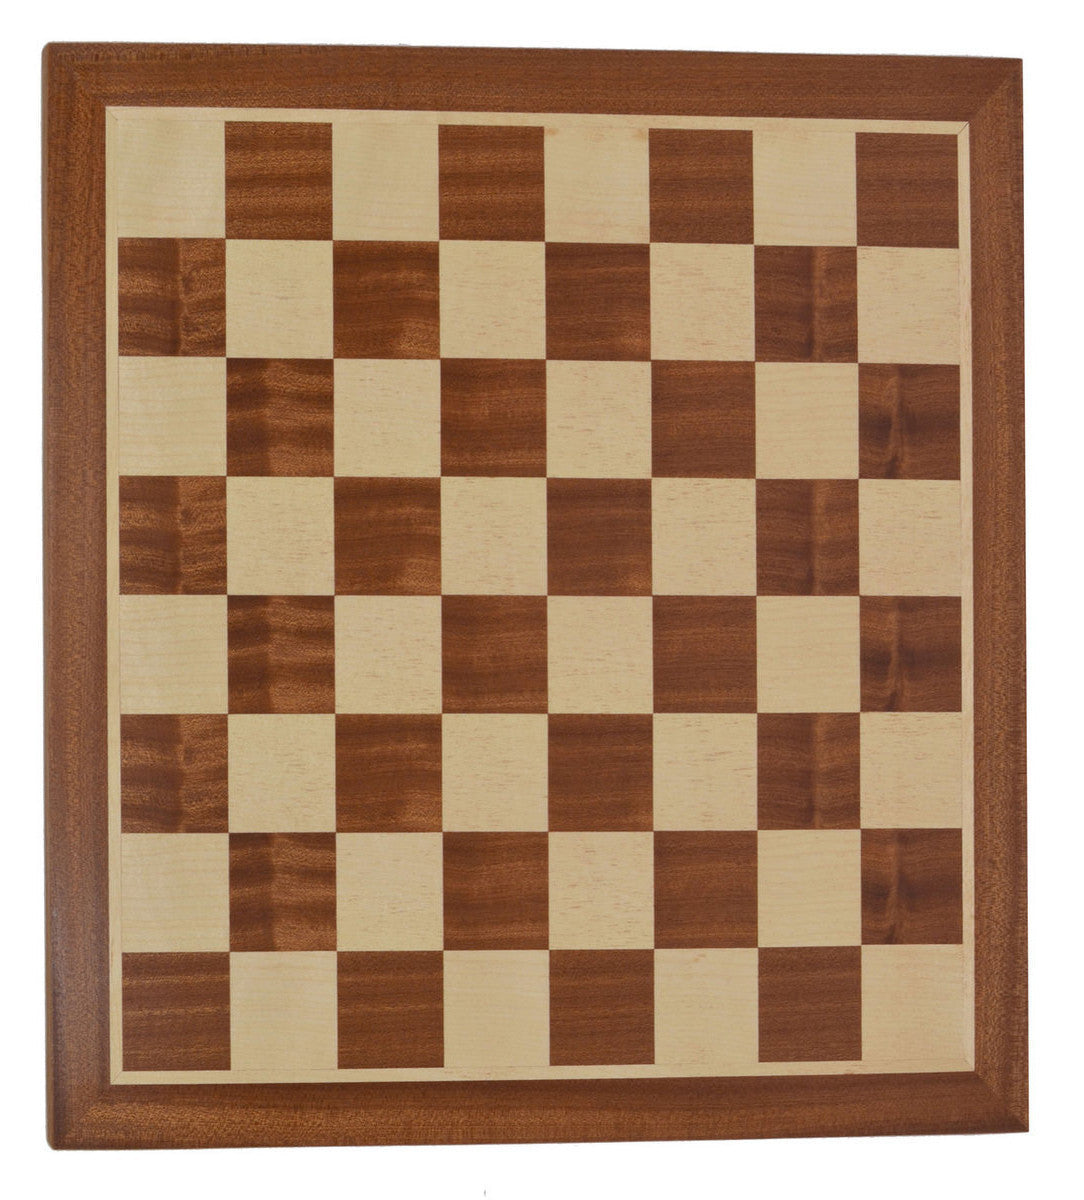 "Mahogany Wood Chess Board with 2.125"" Squares"